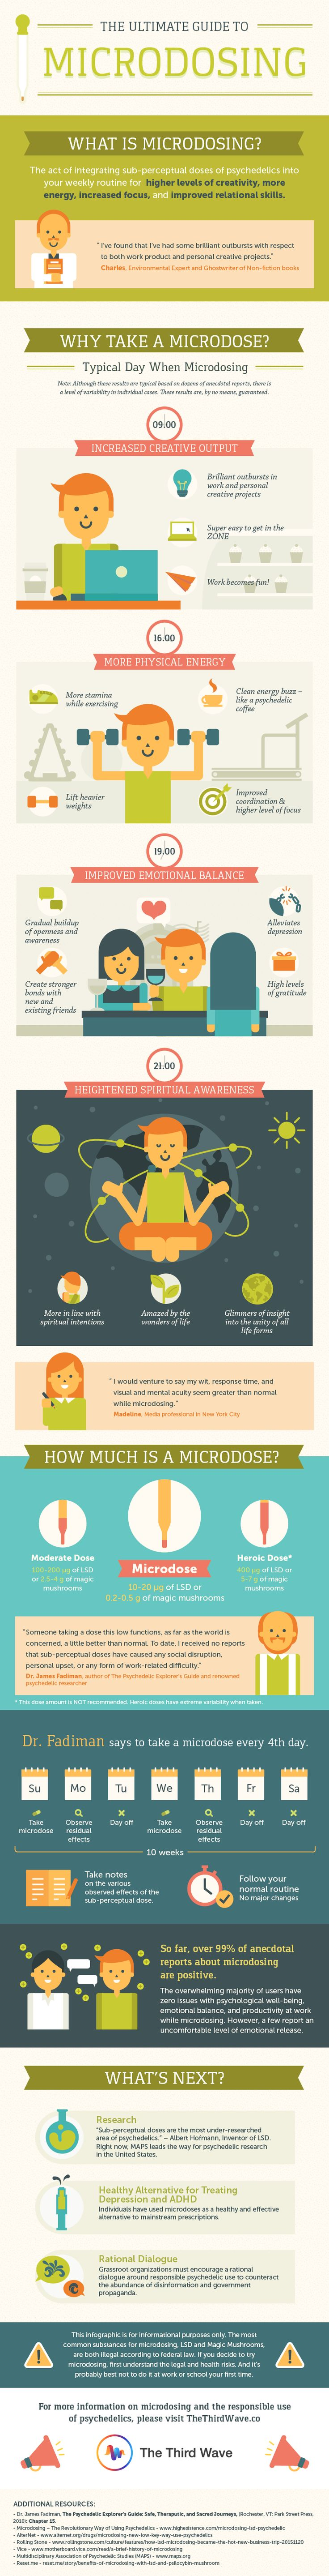 In this infographic, learn about the multitude of benefits from microdosing with… Grab your FREE Amazon Discount Finder Chrome Extension: http://youreallywantthis.com/FreeAmazonDiscountChromeExt